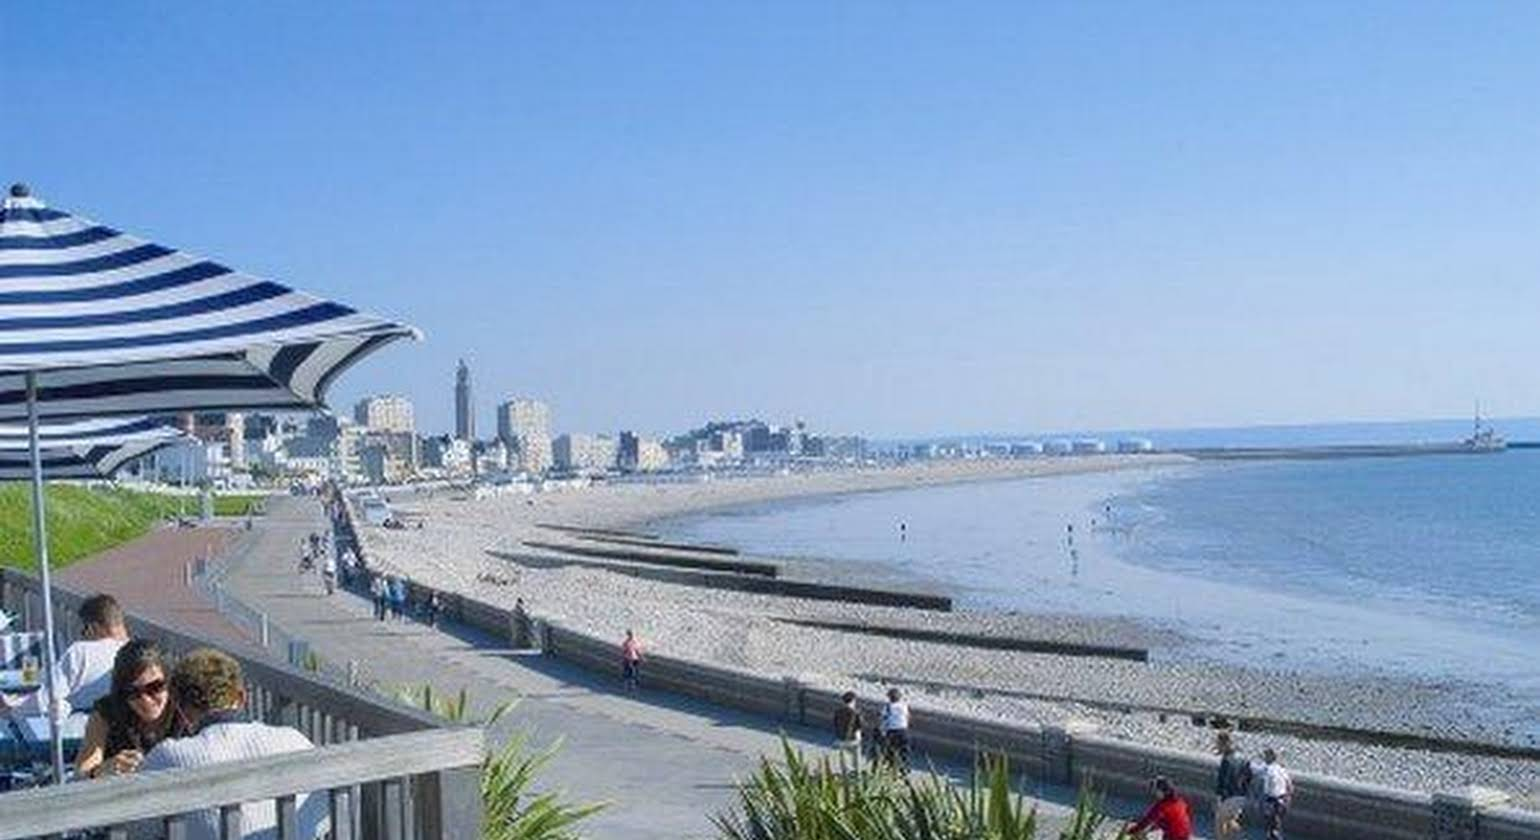 Appart'City Le Havre